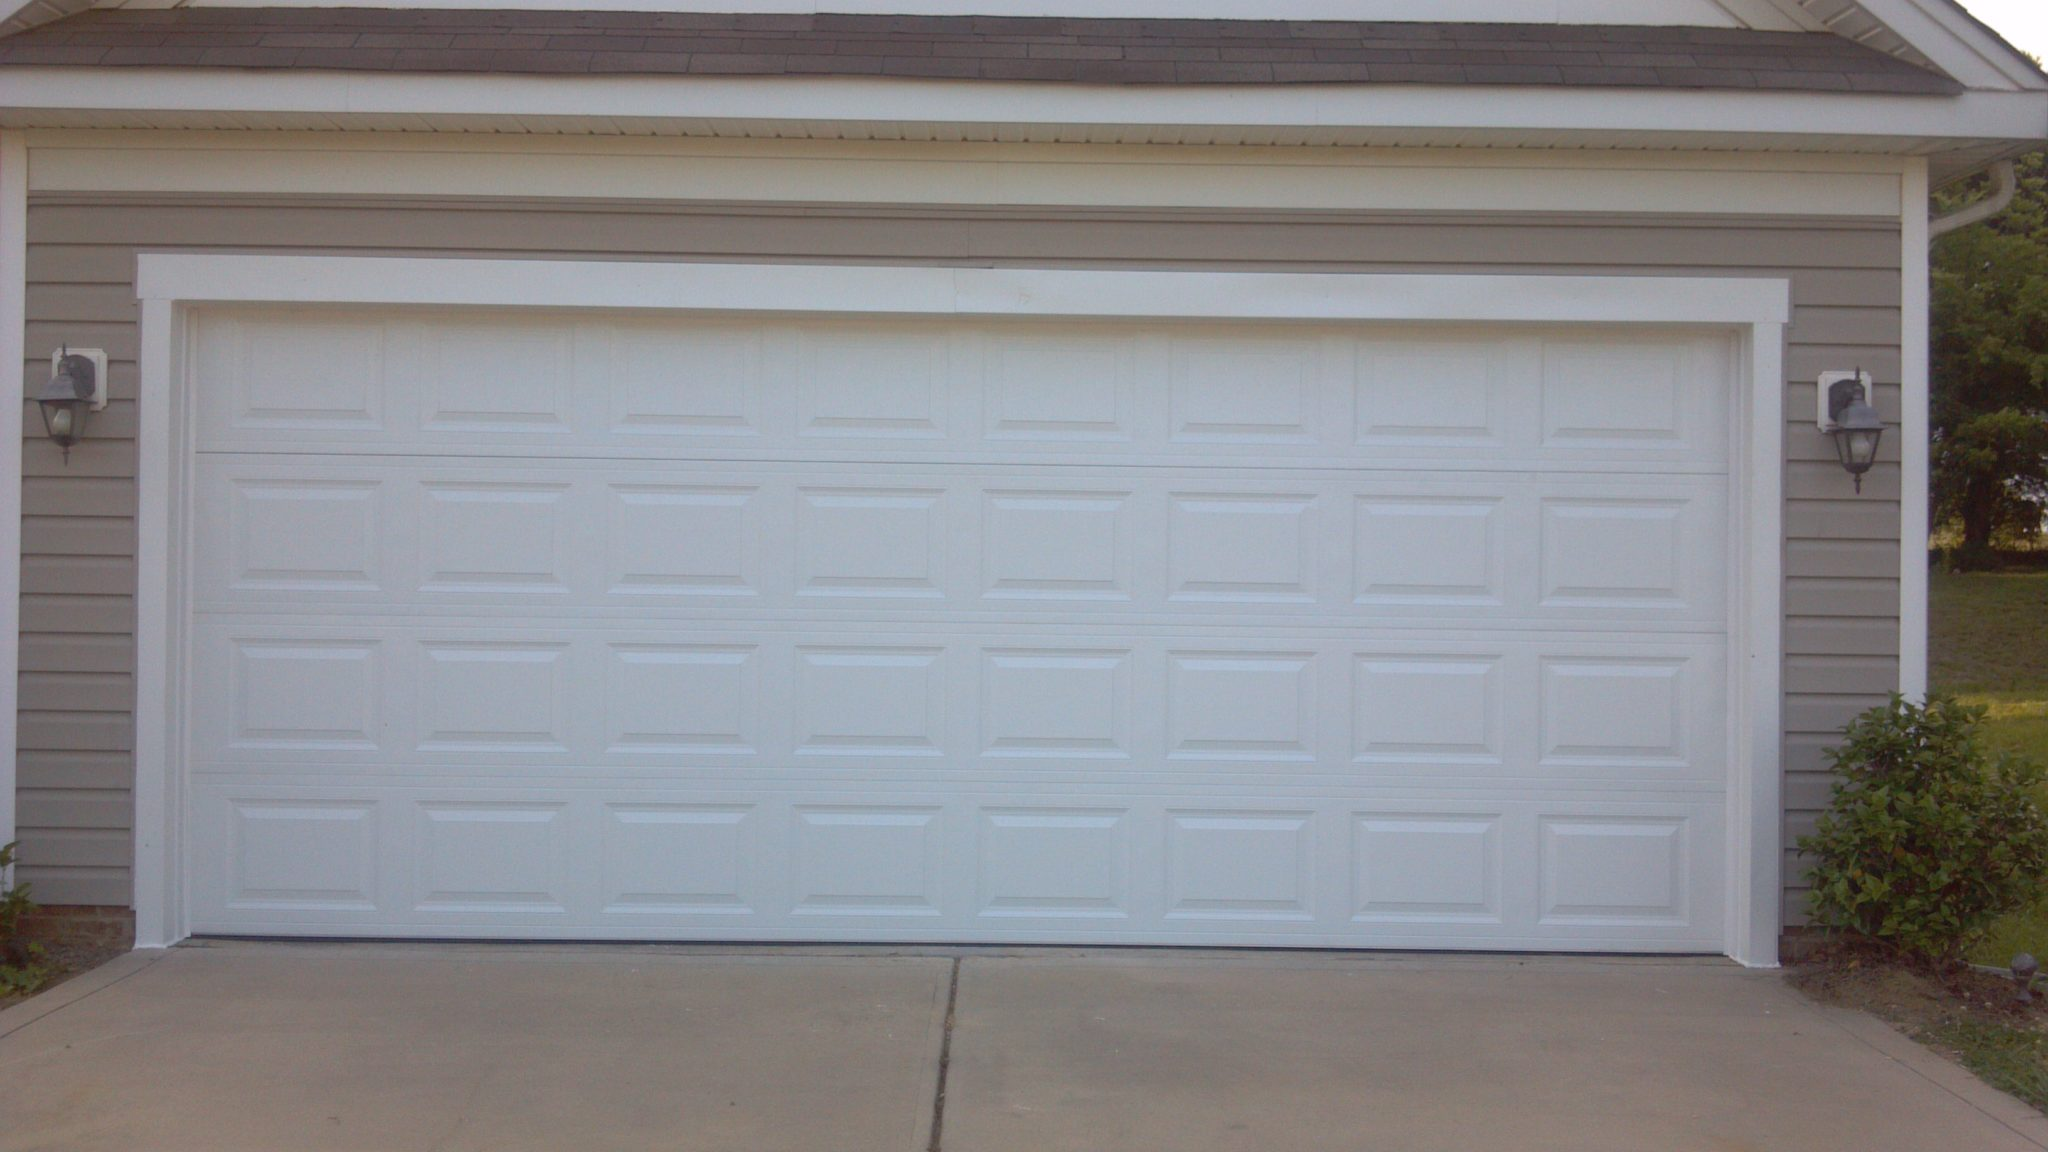 1836 #6D5E4E  Garage Doors Made Into One Garage Door After A Plus Garage Doors wallpaper Doors And Garage Doors 37153264